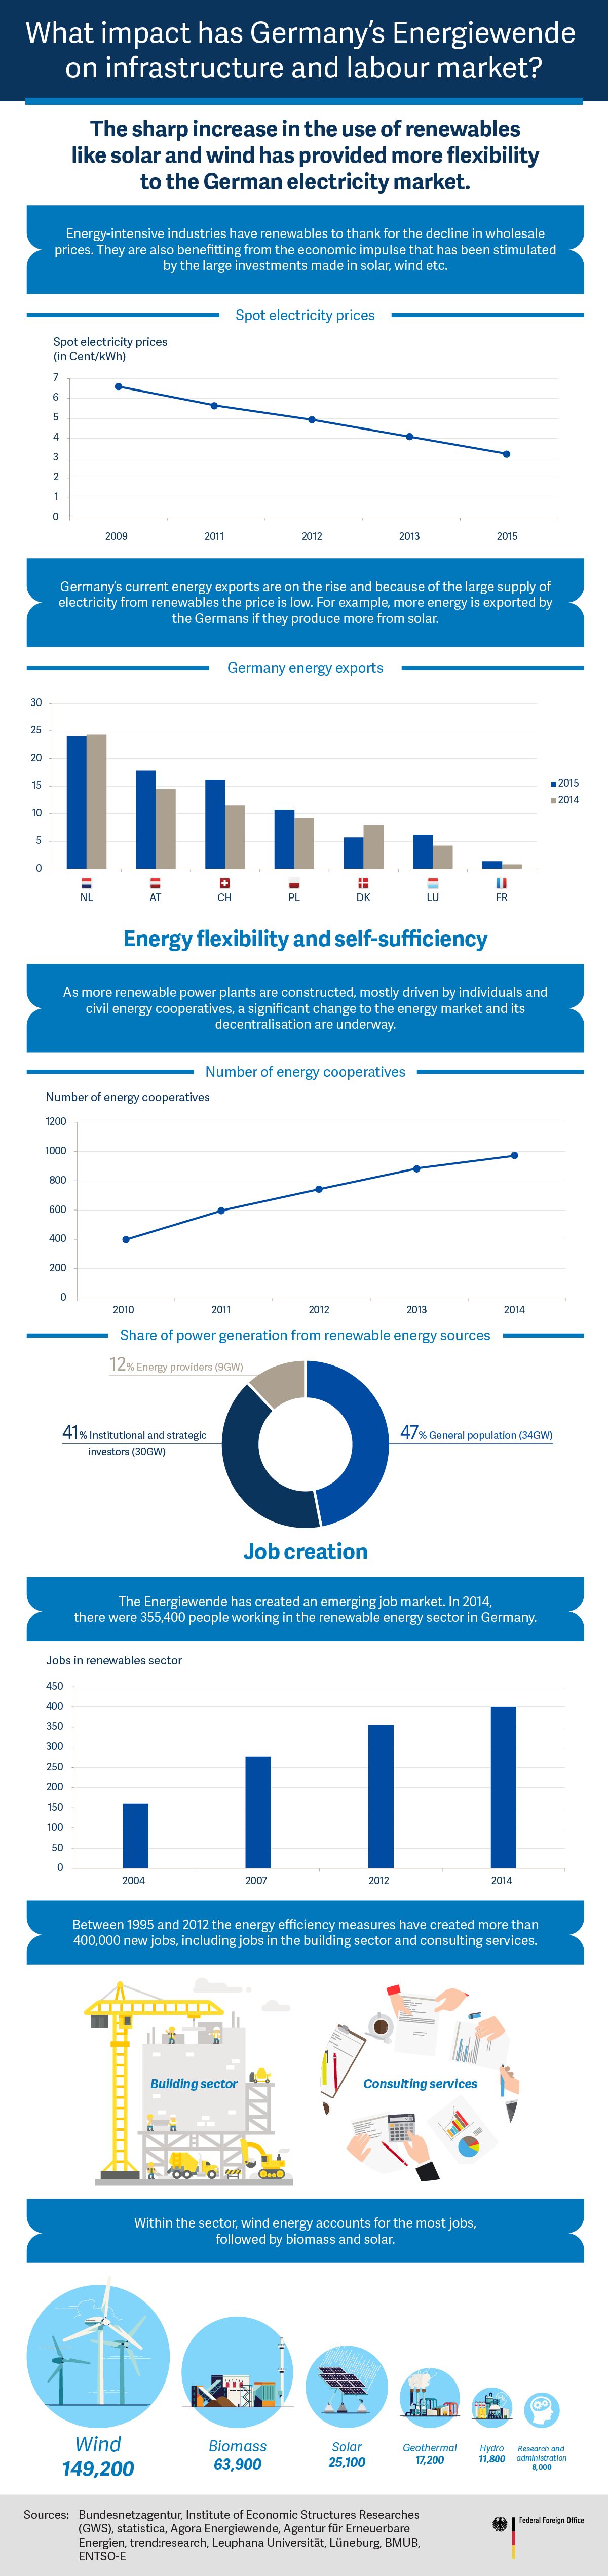 What impact has Germany's 'Energiewende' had on infrastructure and the labour market?